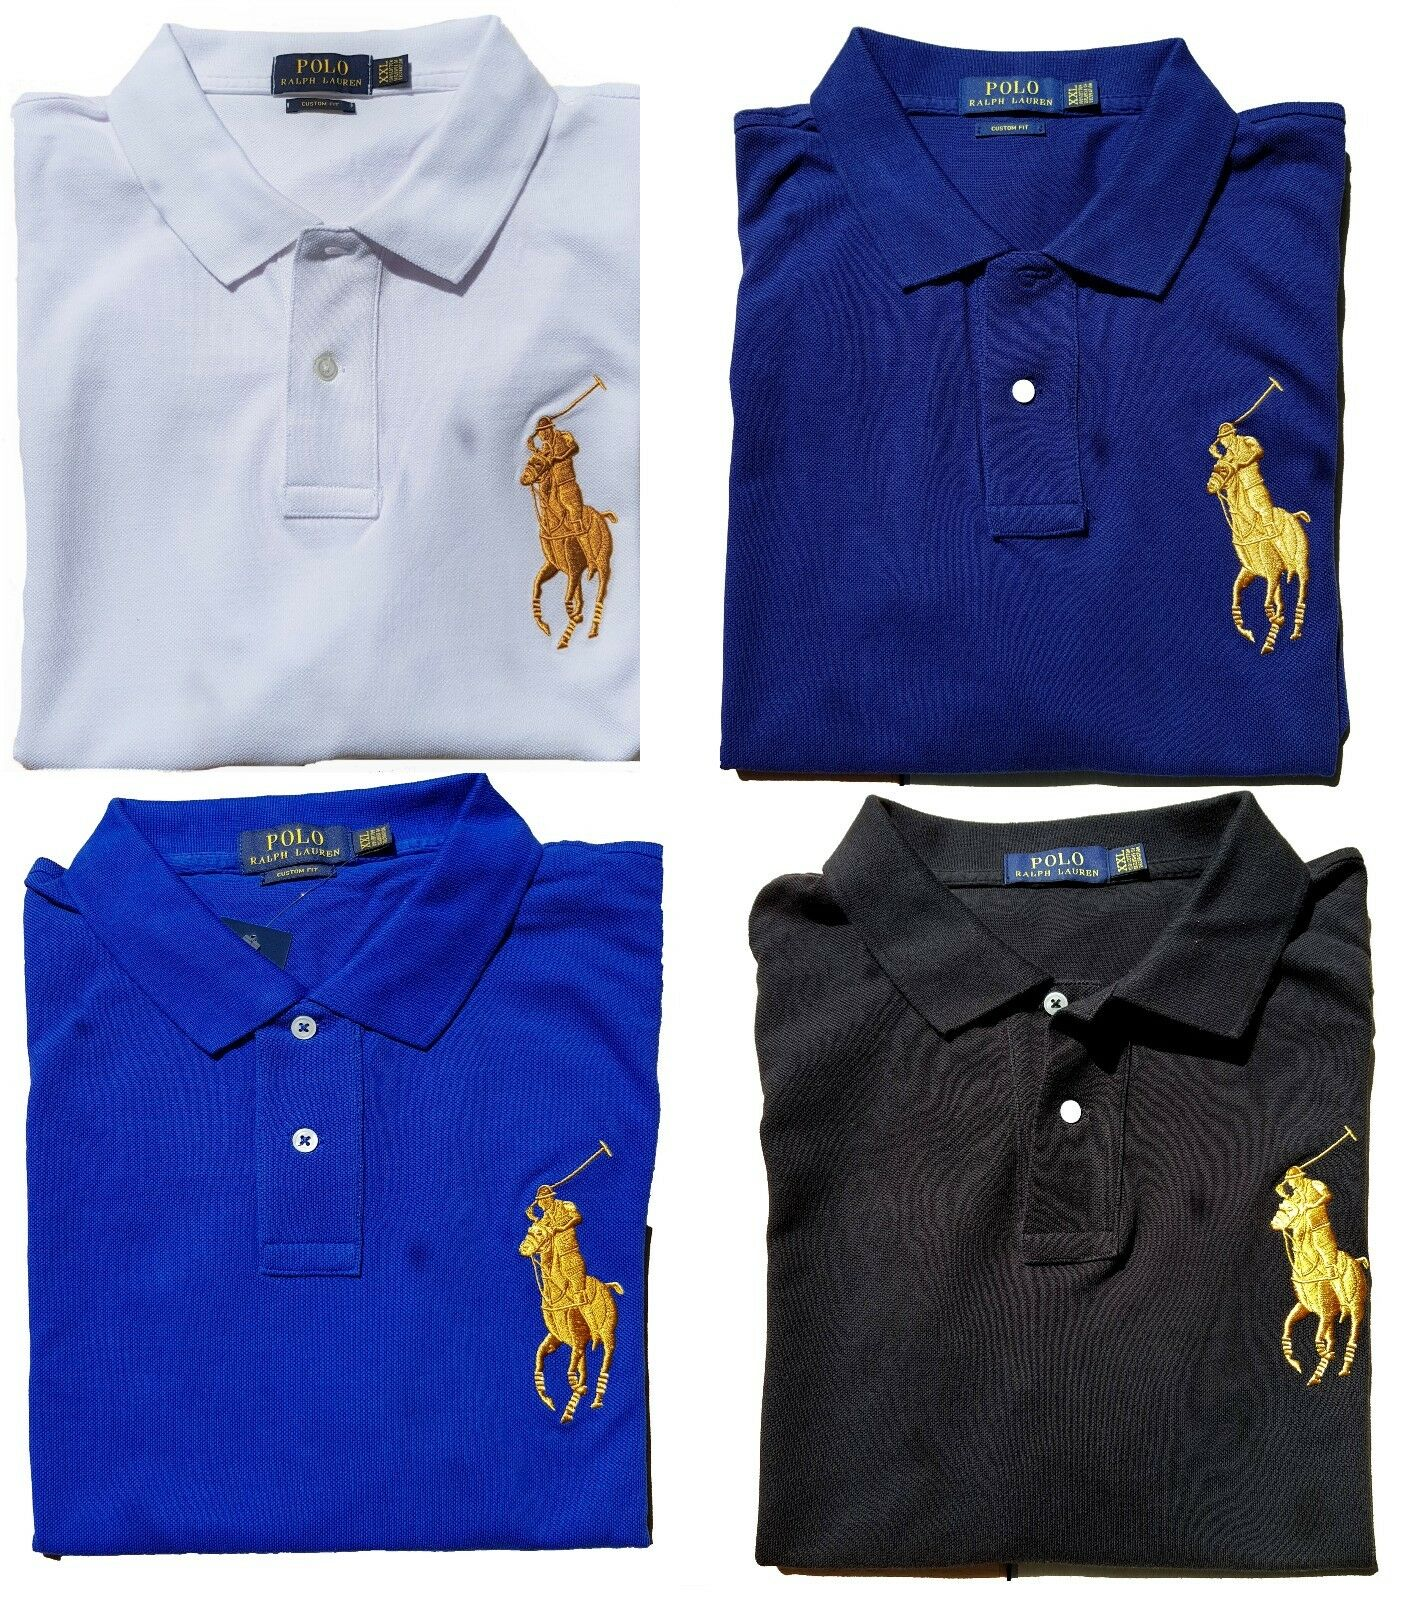 669620d2f3d07 Ralph Lauren Mens Polo Shirts - Cotswold Hire